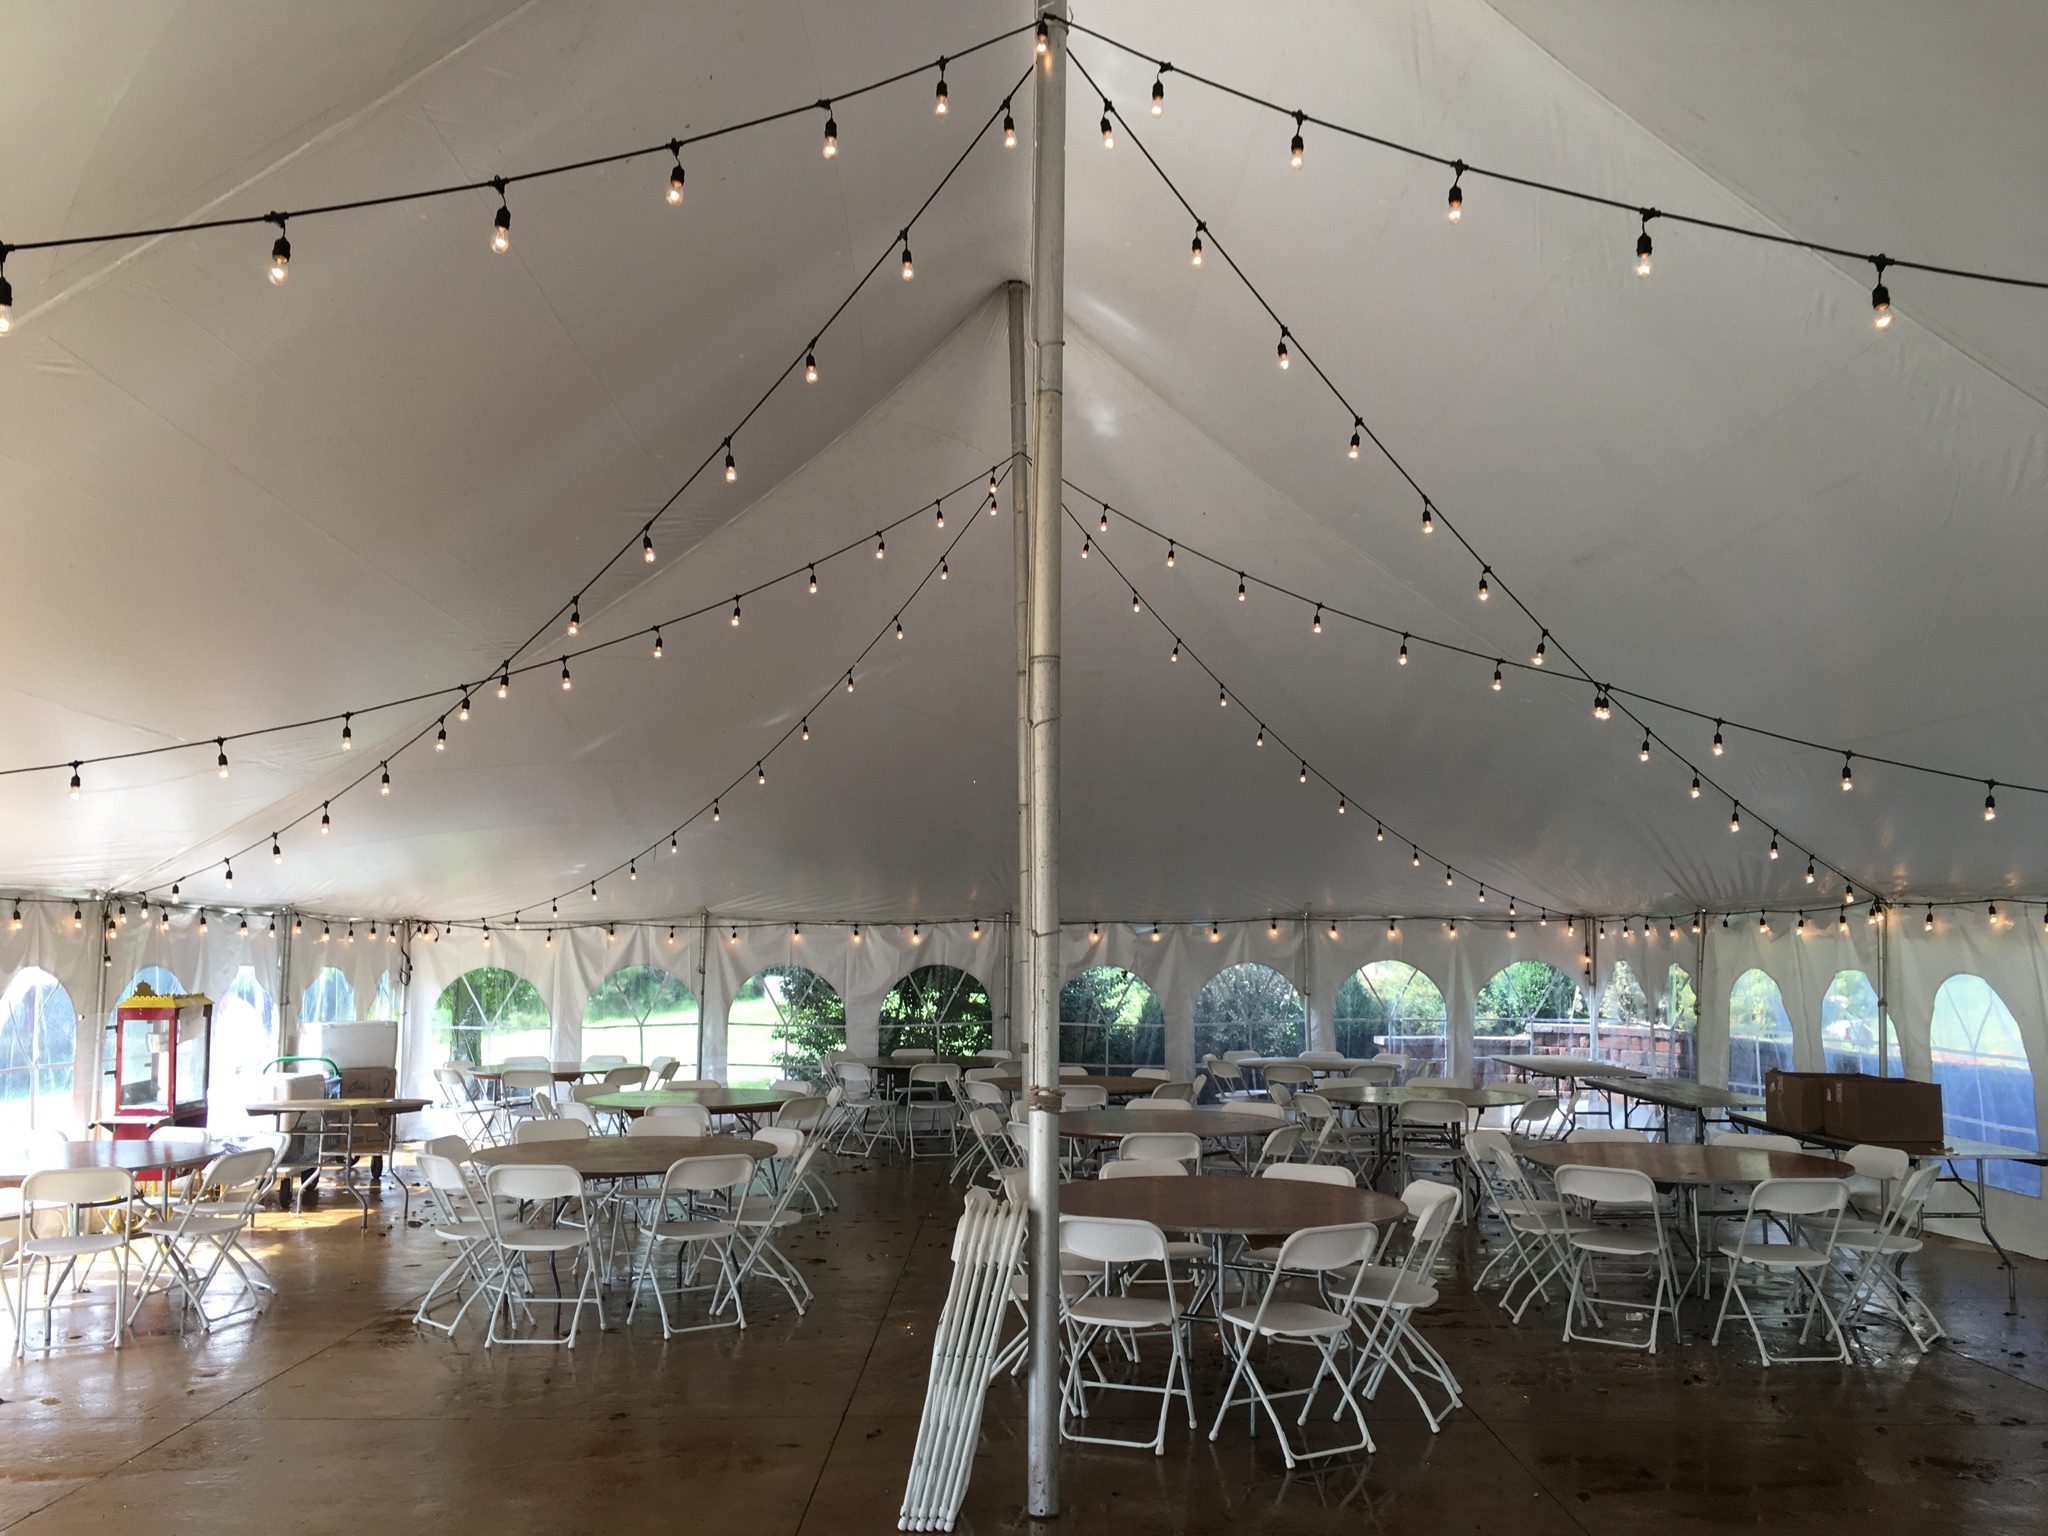 40 39 x 60 39 rope and pole tent with cafe lights tables for Wedding tent layout tool